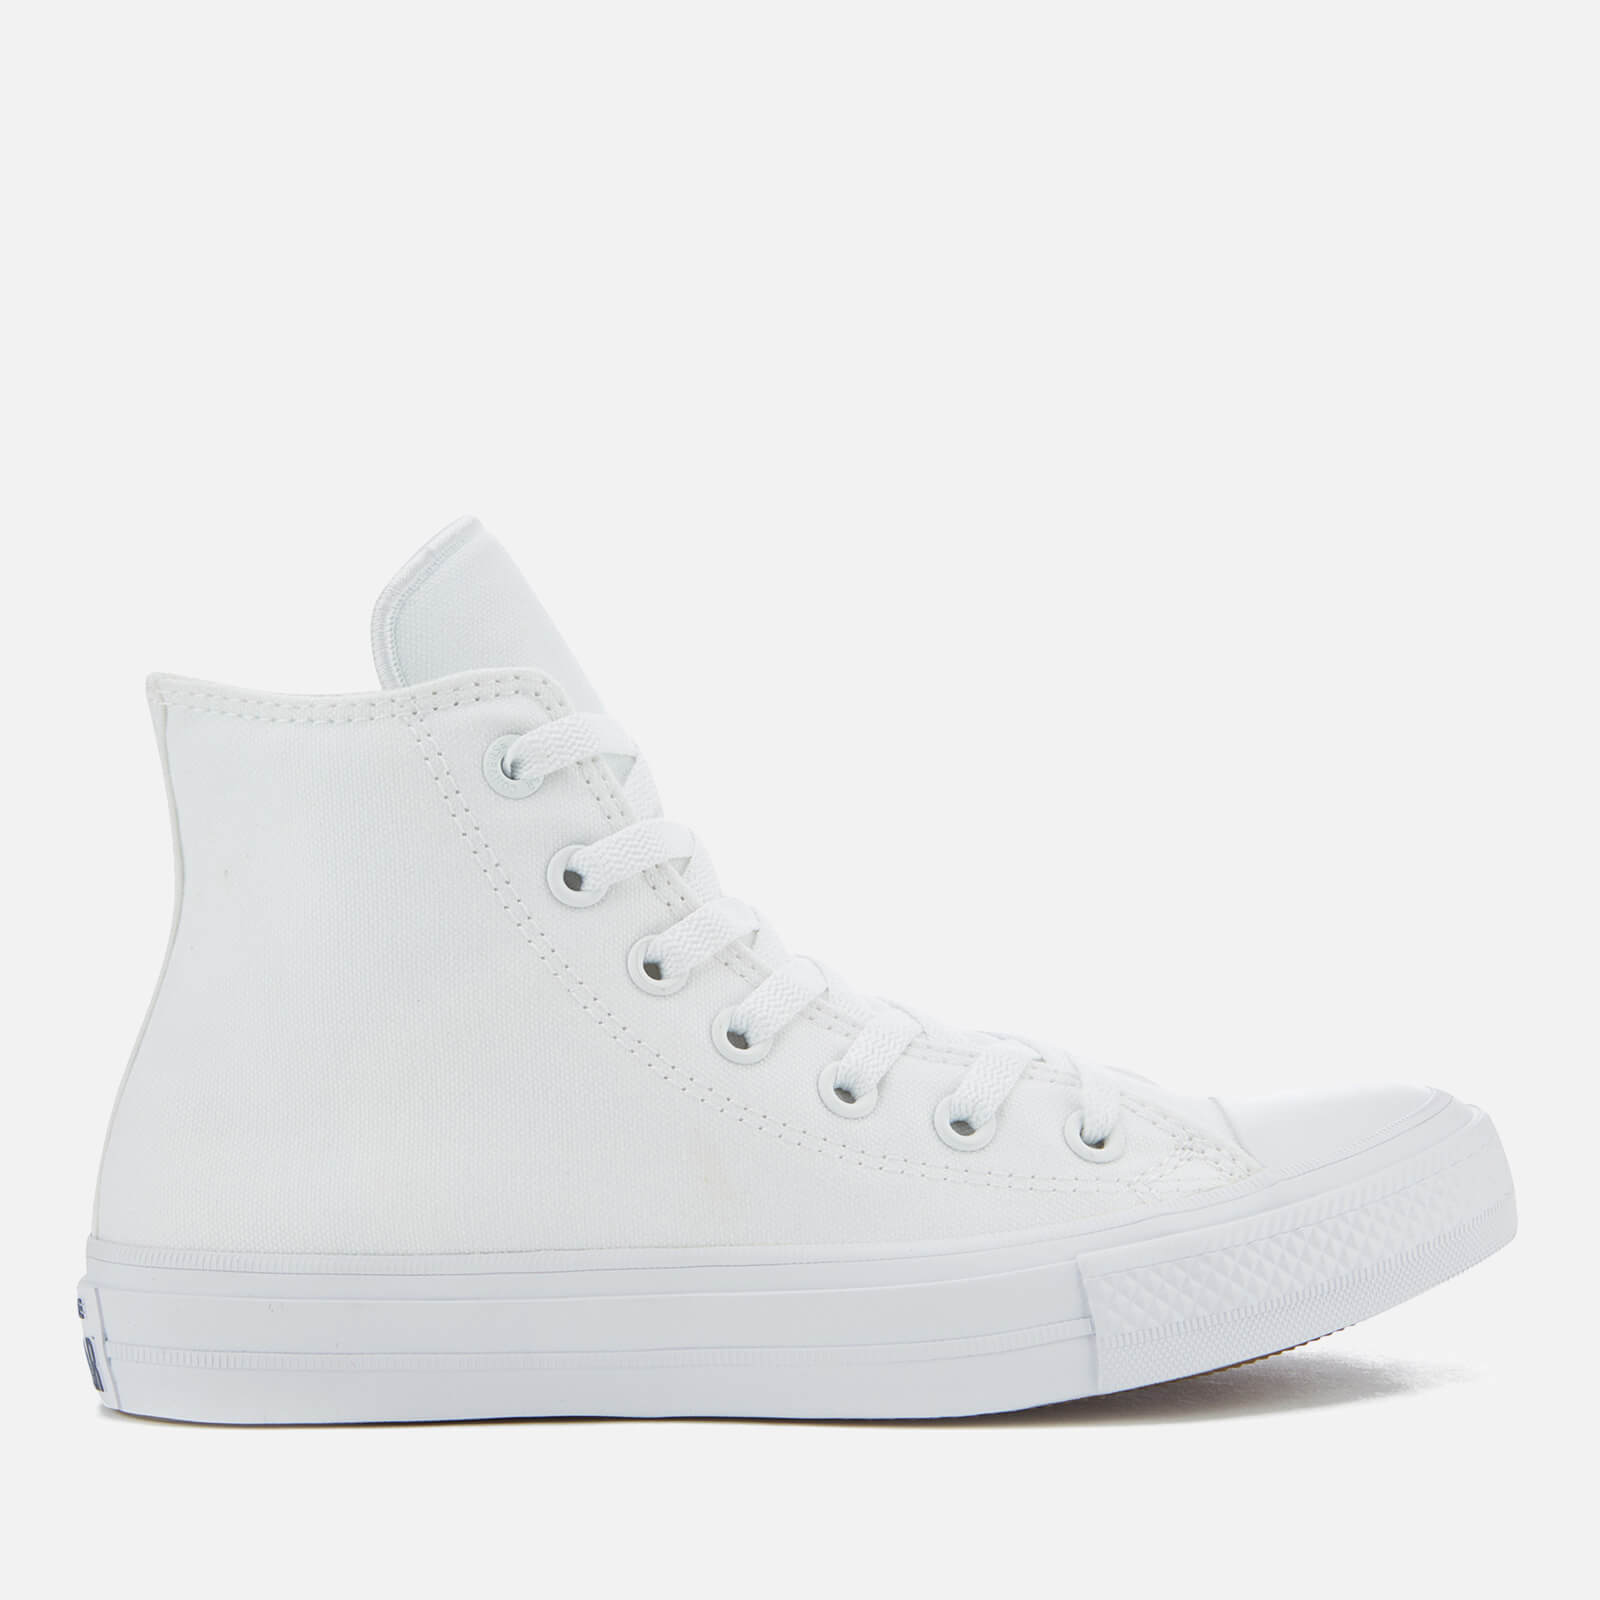 285b9d498b7379 Converse Chuck Taylor All Star II Hi-Top Trainers - White White Navy - Free  UK Delivery over £50